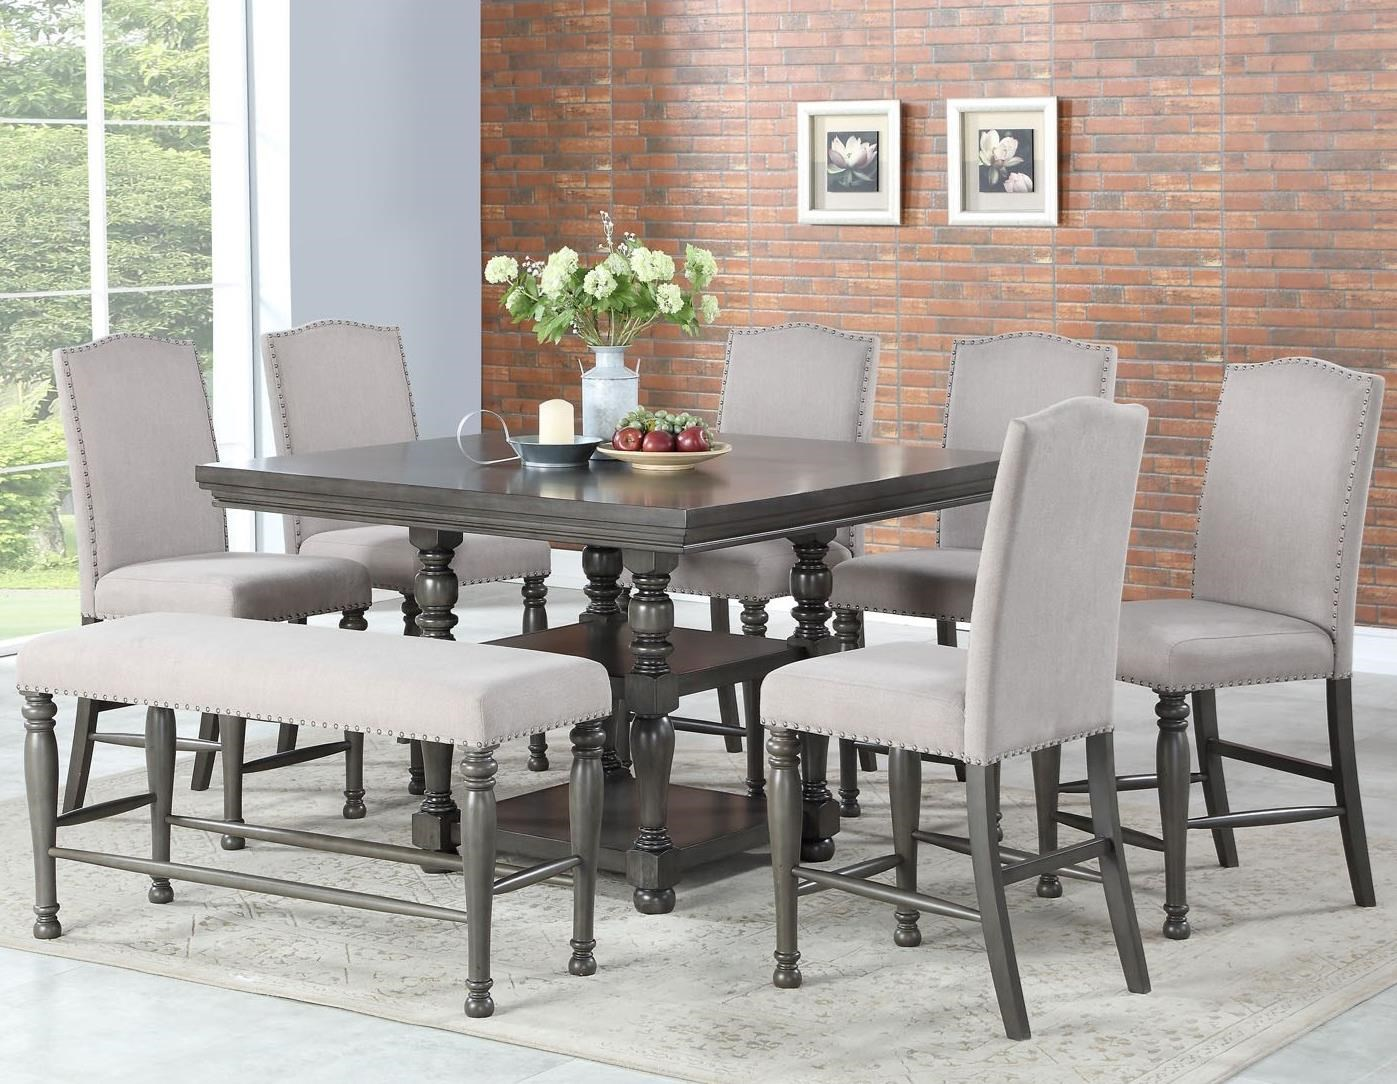 Caswell 8 Pc Counter Dining Set w/ Bench by Steve Silver at Northeast Factory Direct